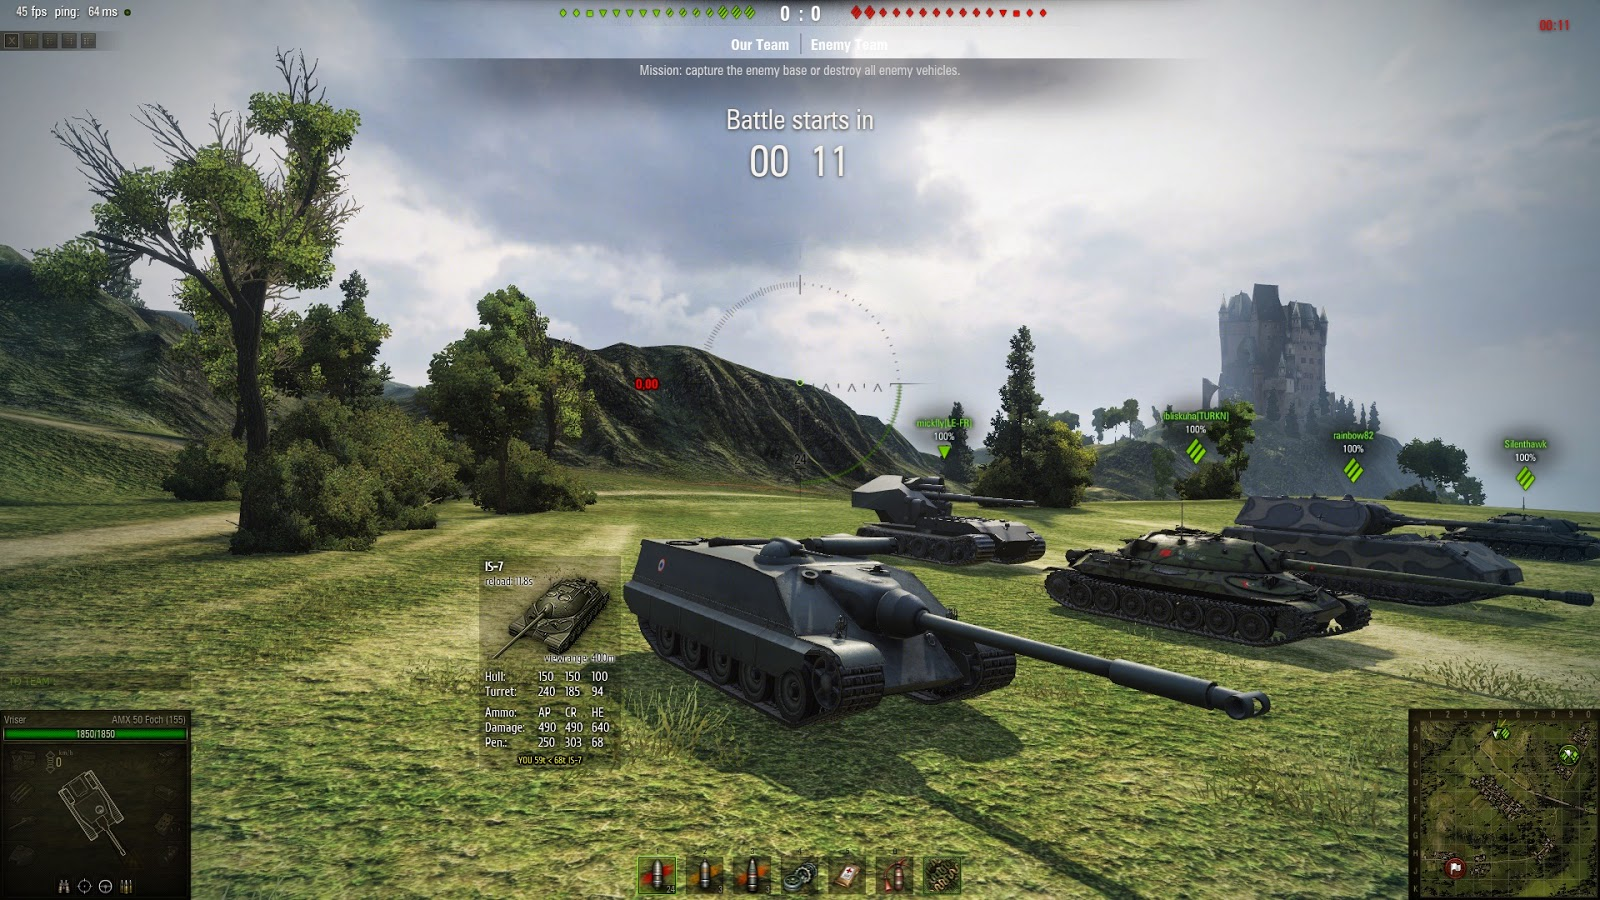 Мини карта для игры world of tanks